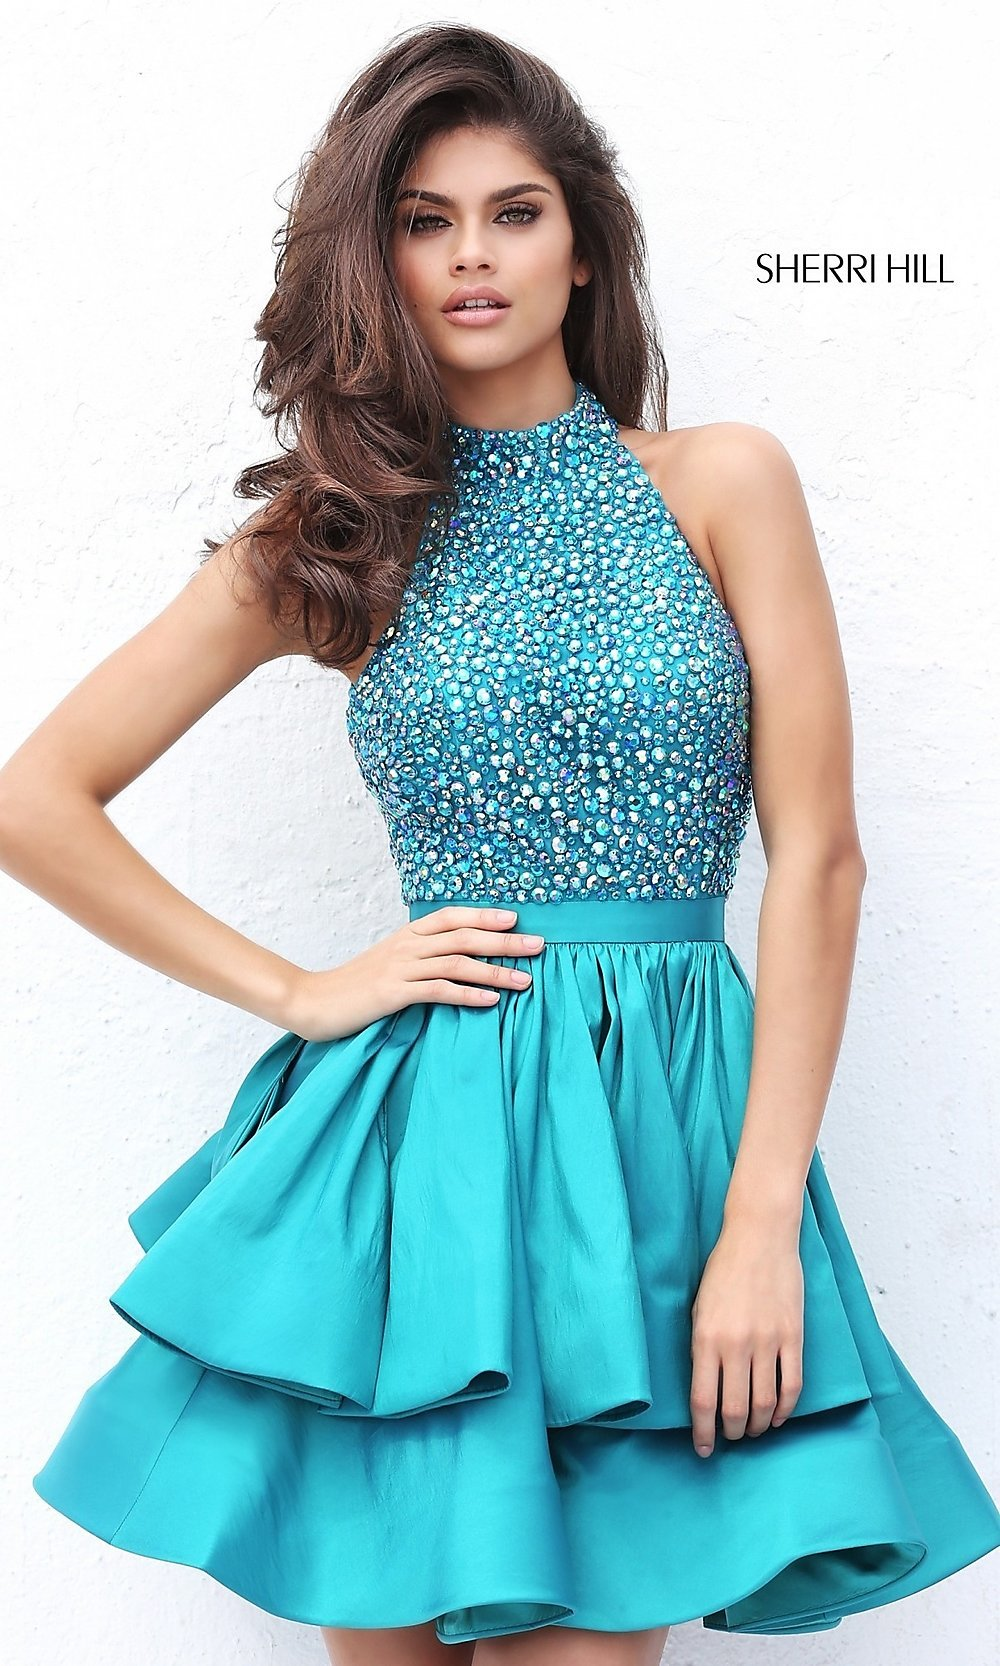 Teal Green Dress What Color Shoes